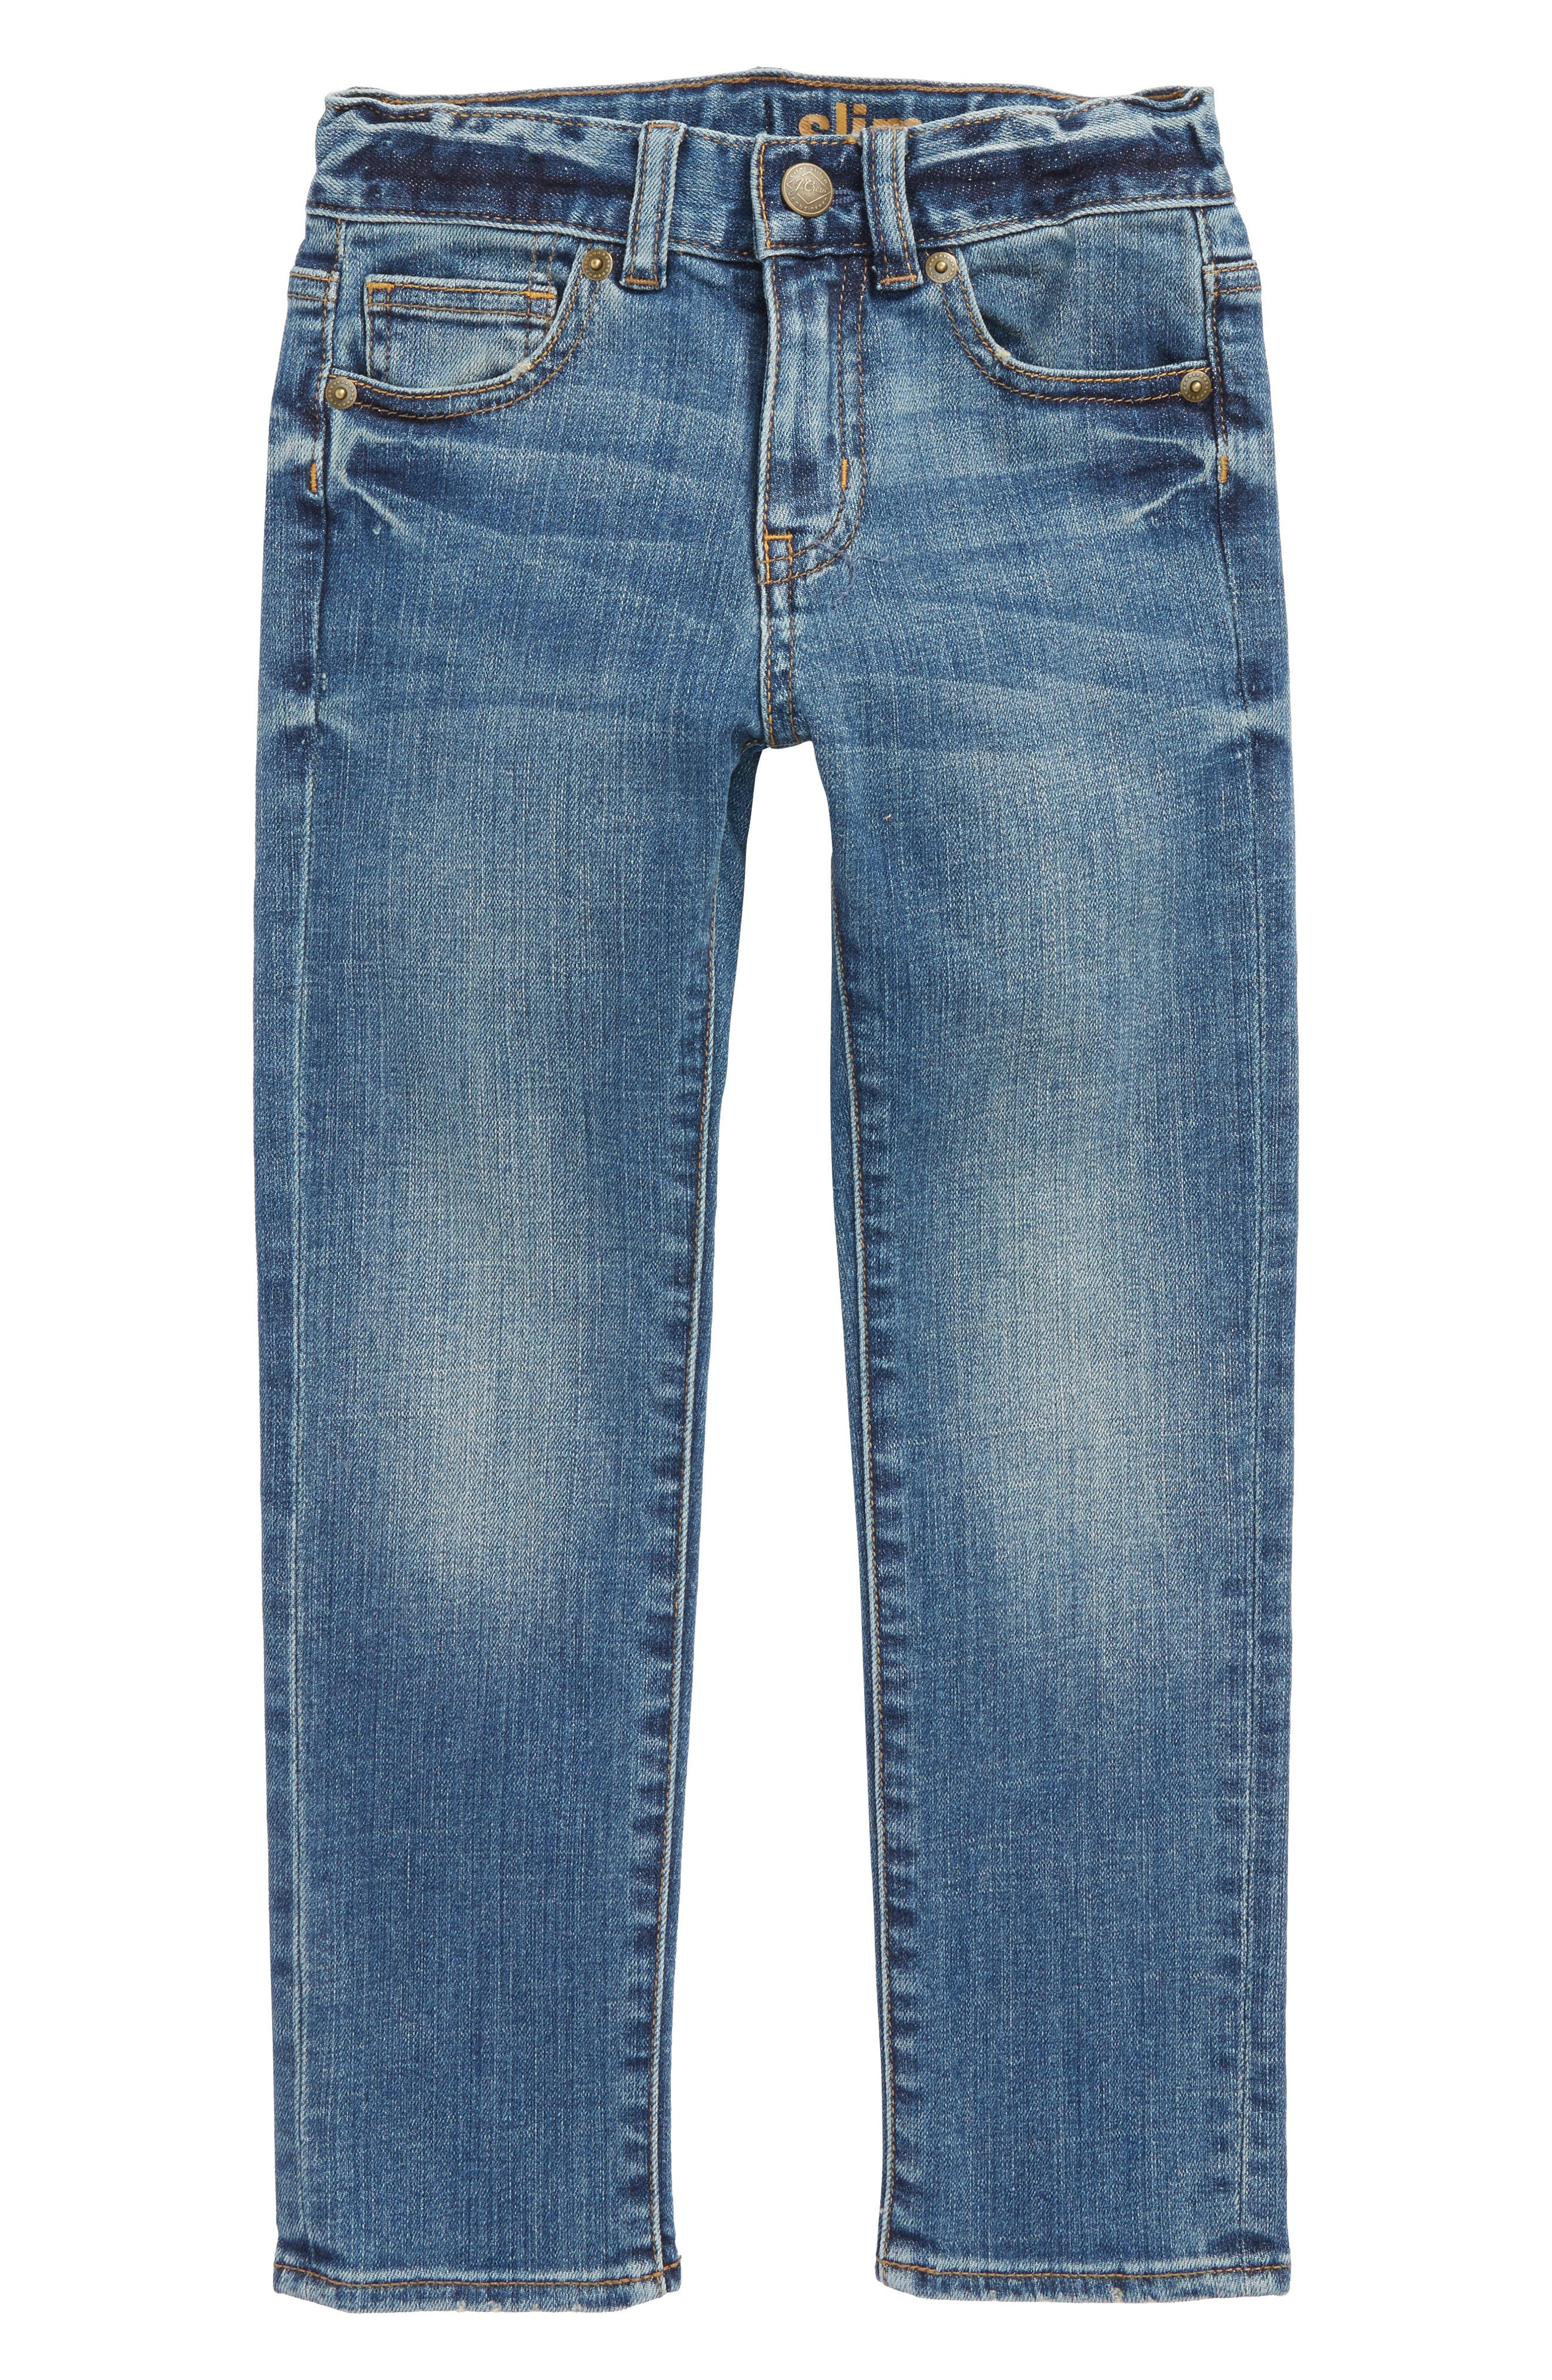 Slim Fit Rugged Wash Jeans,                             Main thumbnail 1, color,                             400